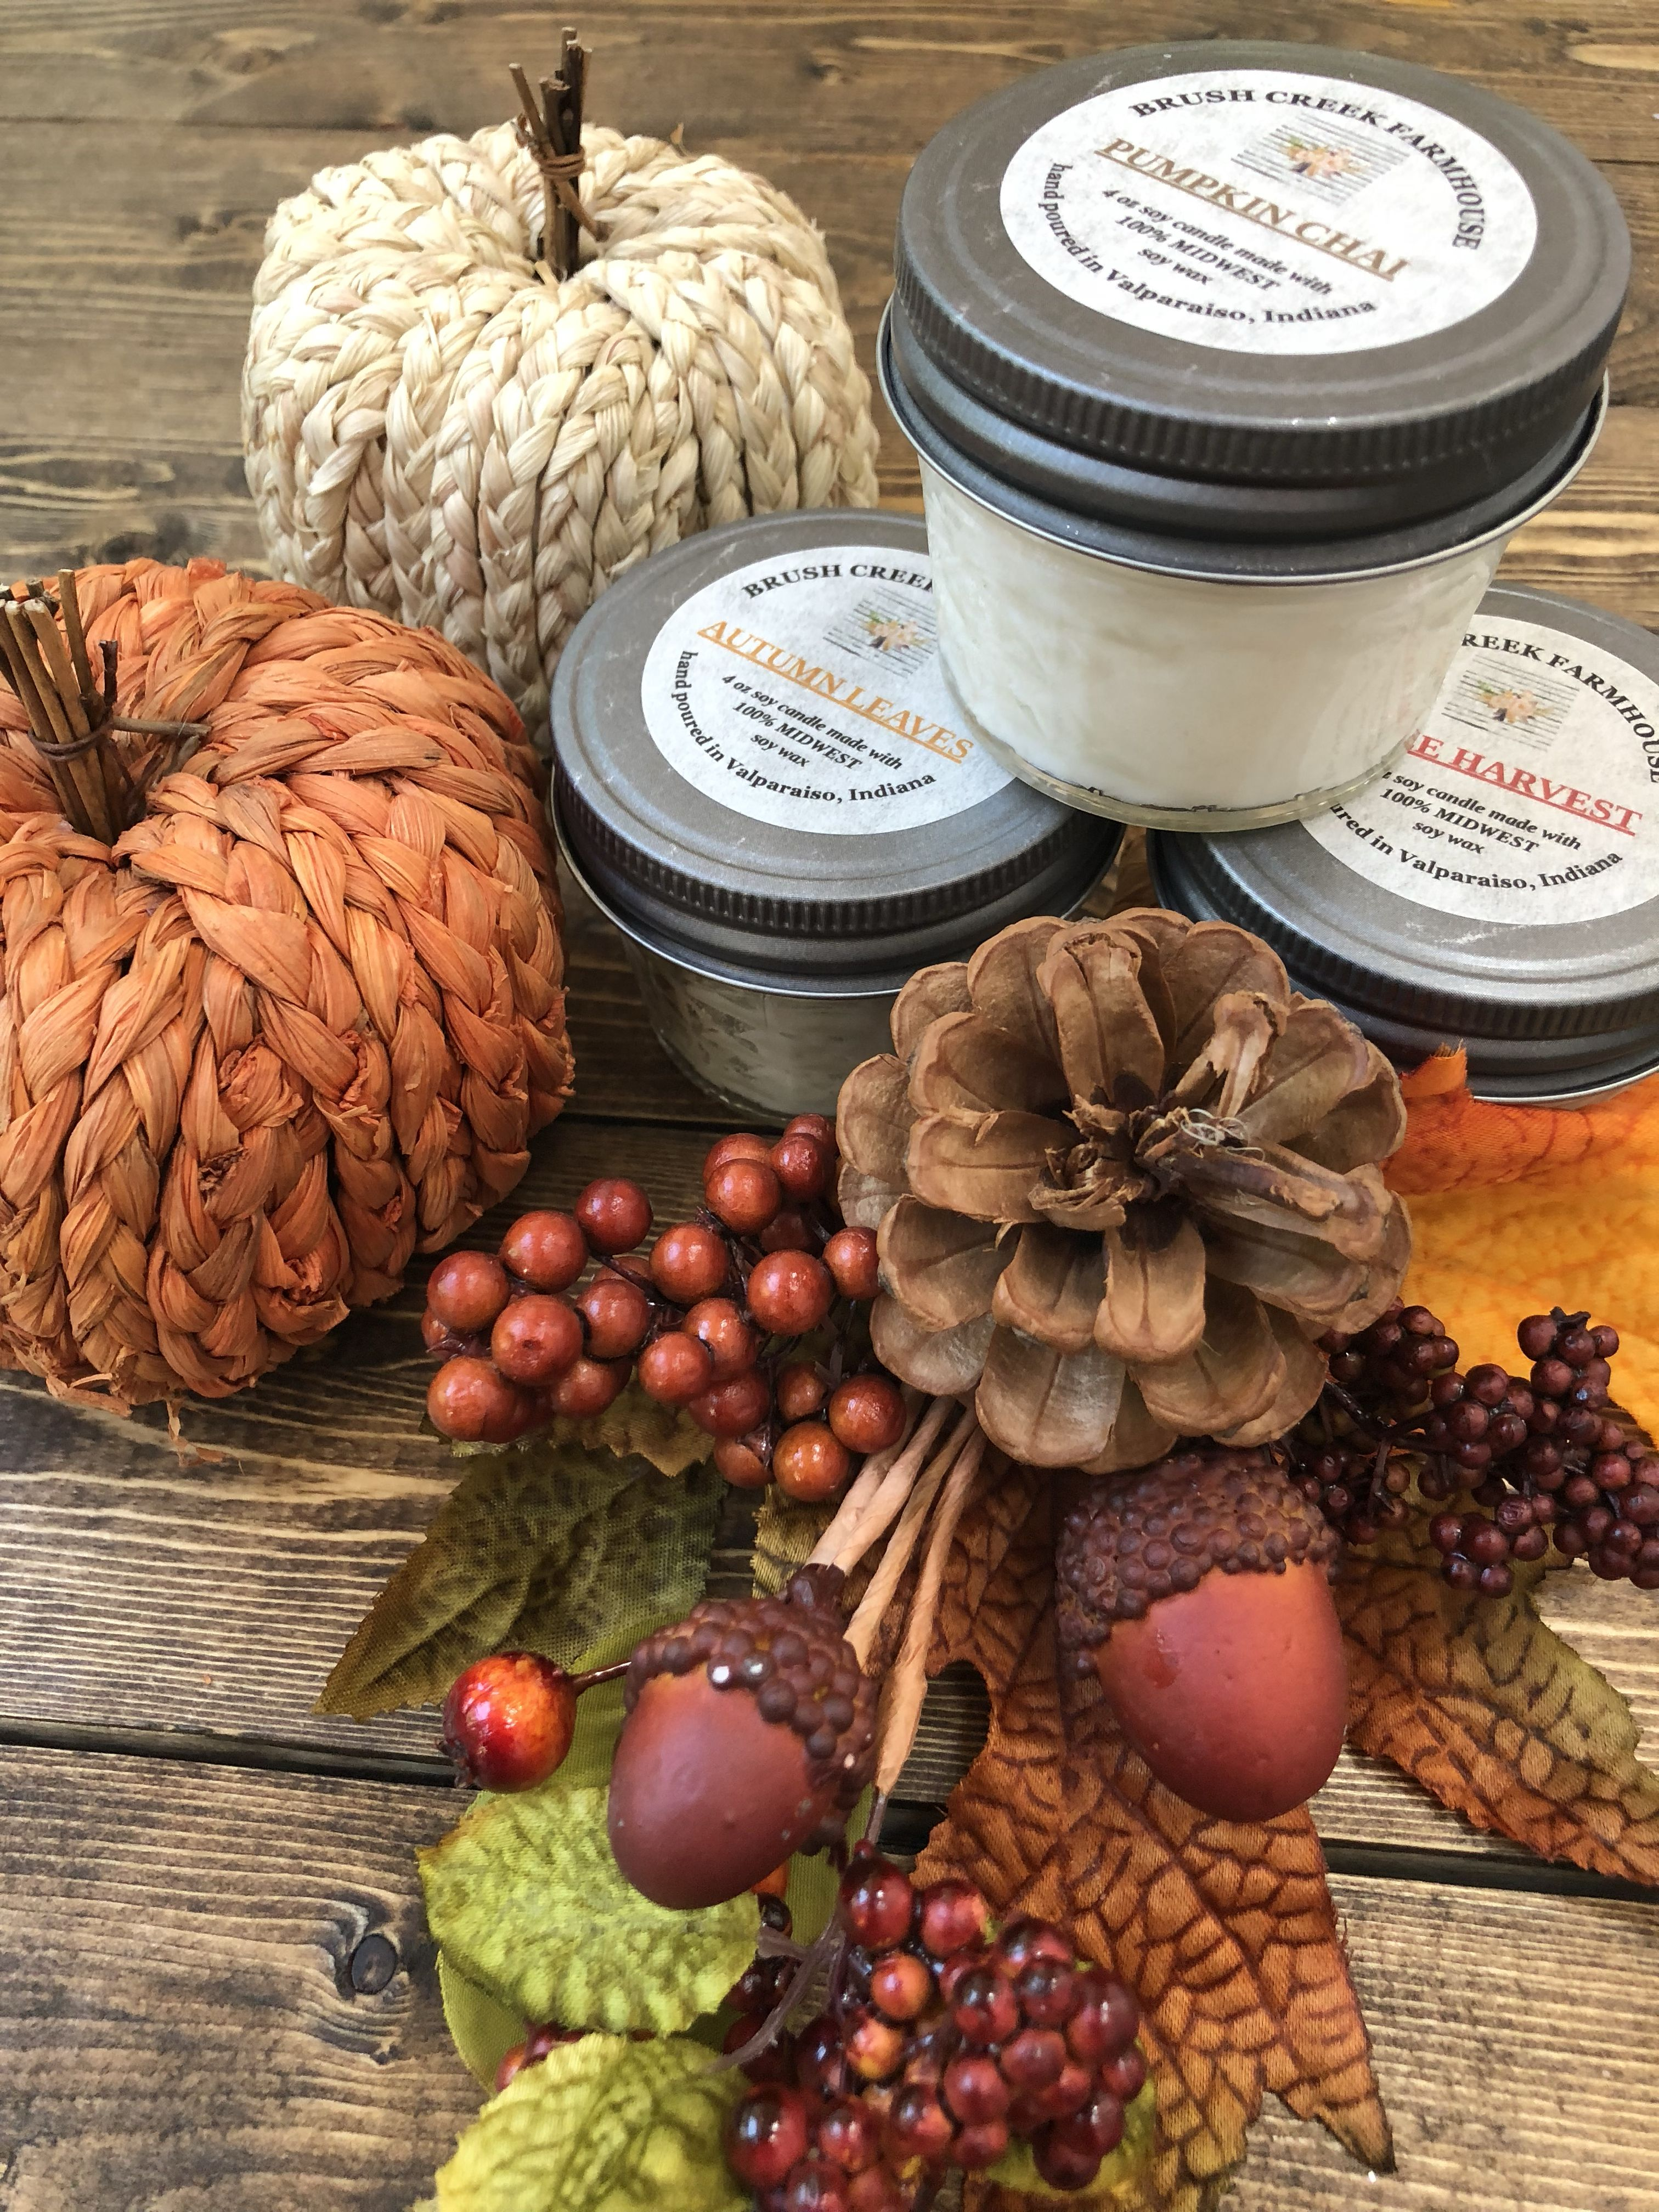 Autumn leaves, pumpkin Chai and apple harvest 4 oz candles made with